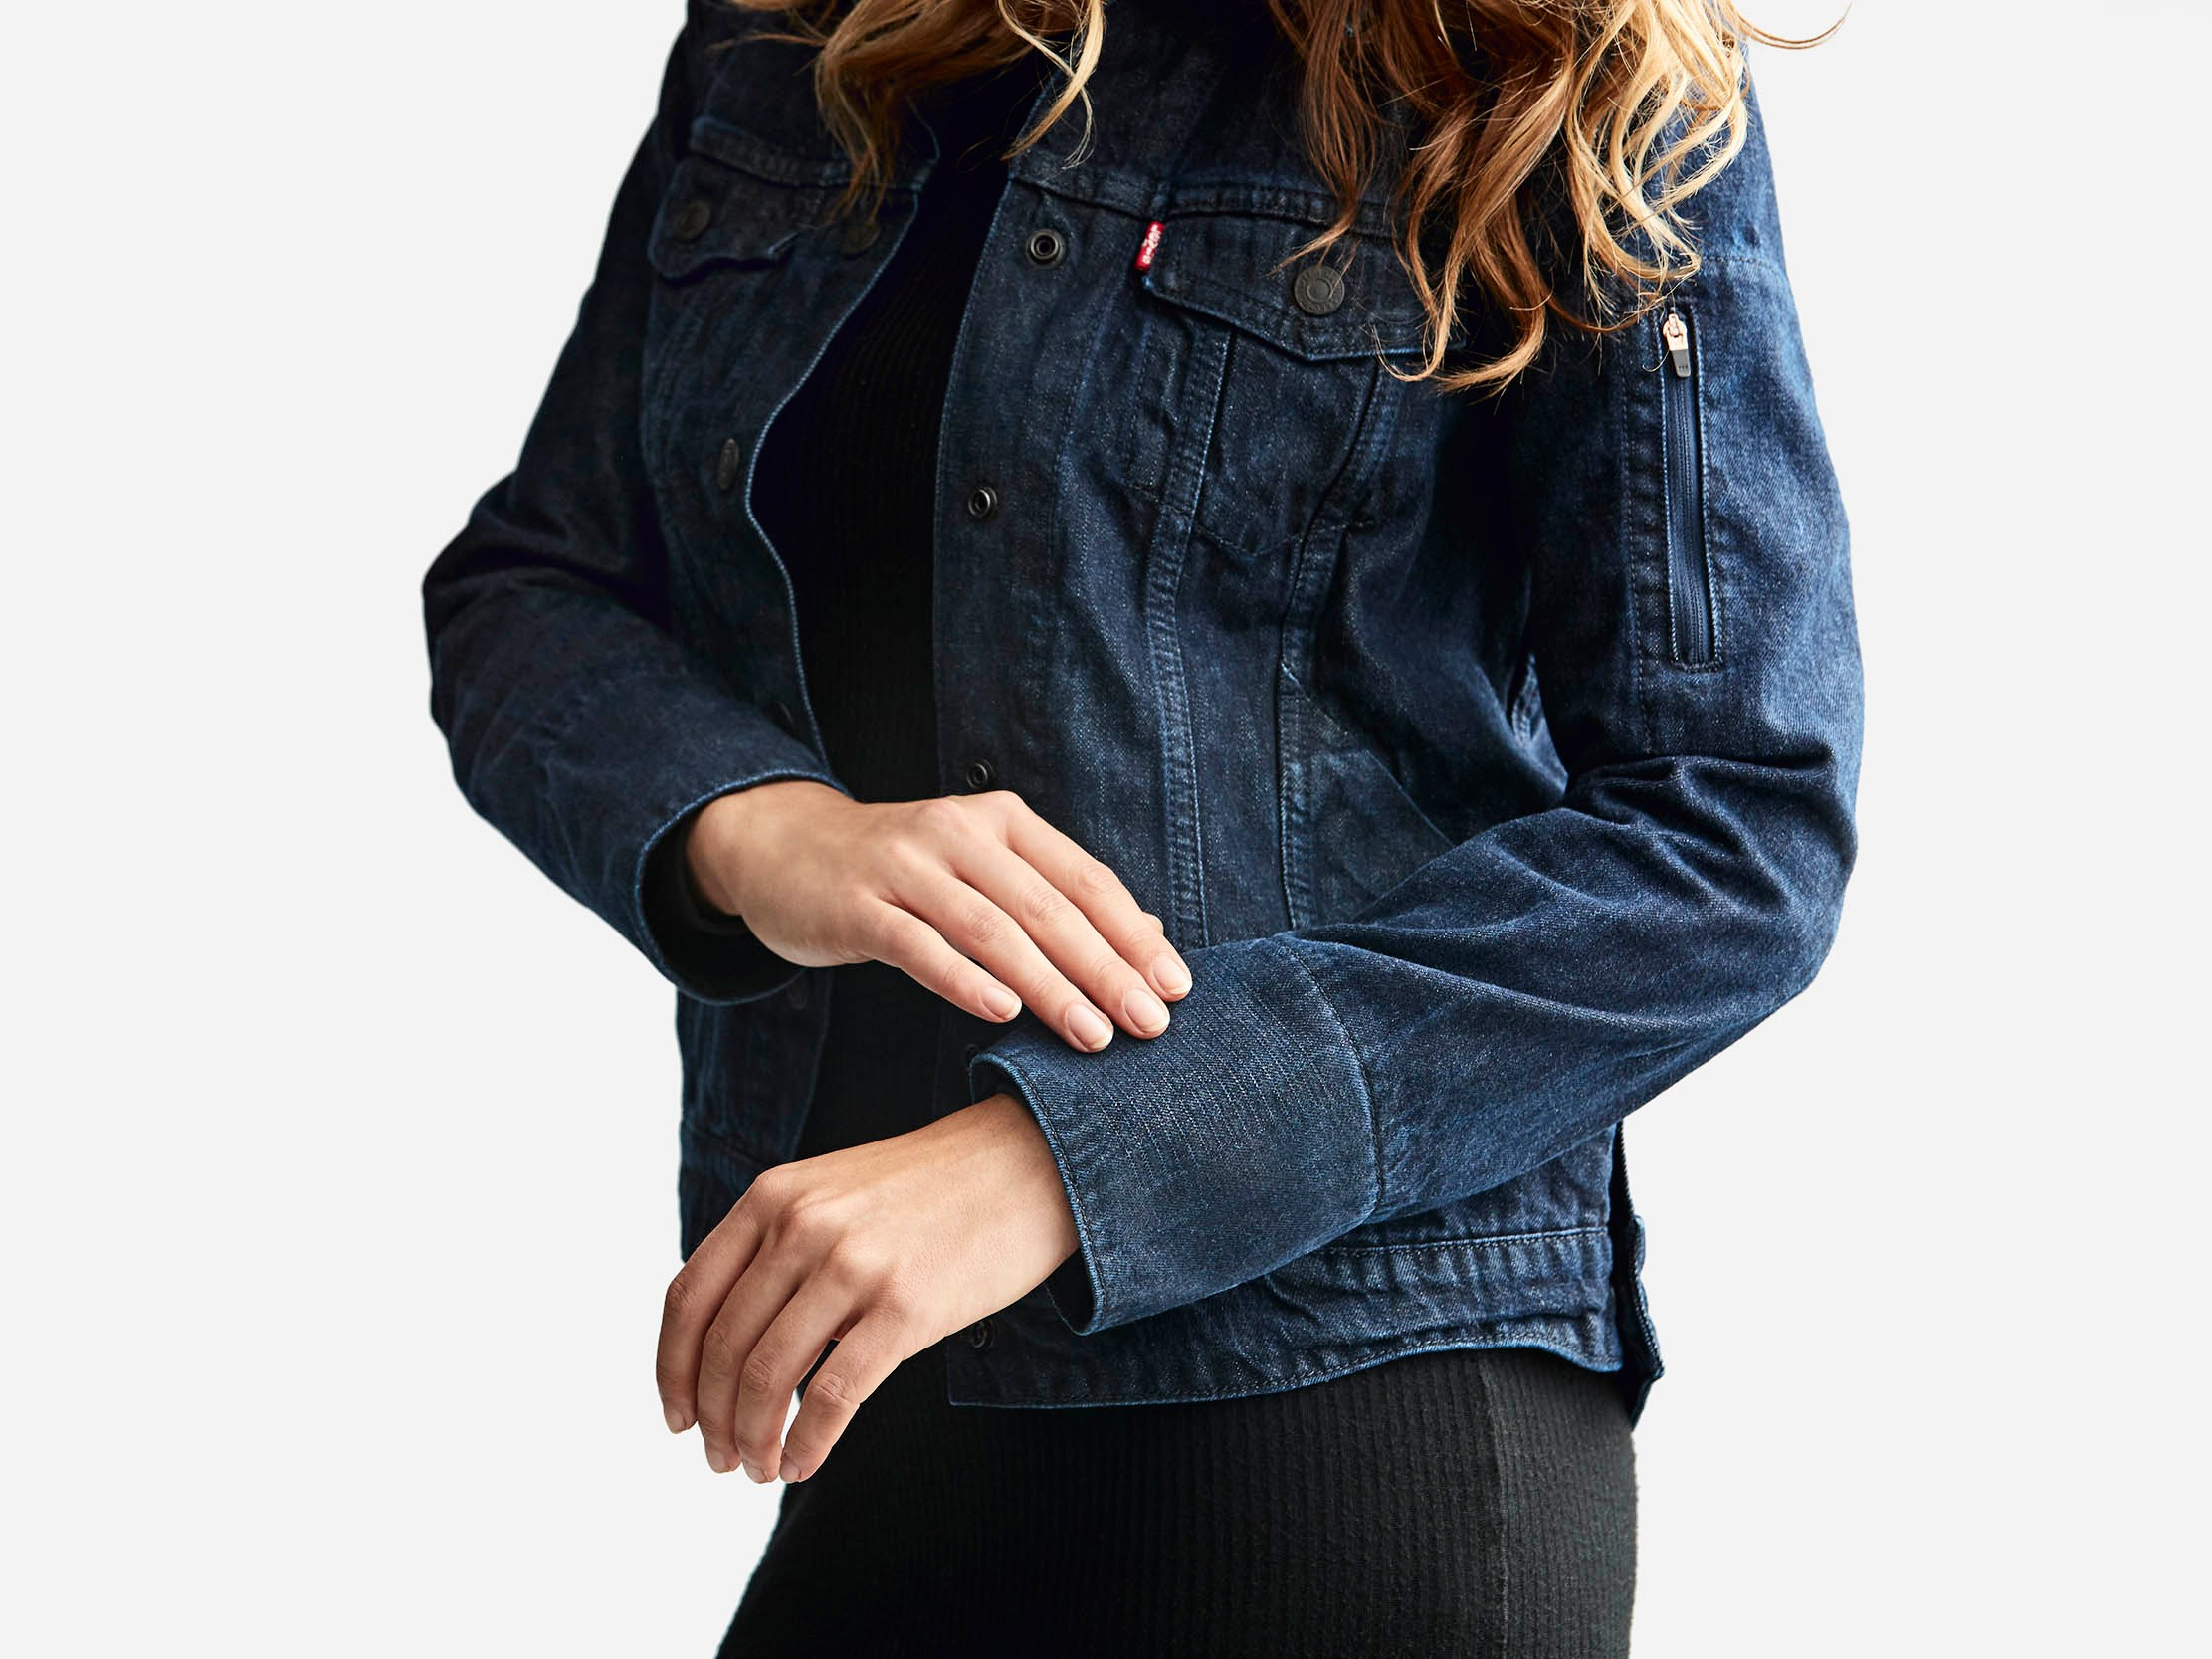 This smart jacket was already loaded with many features, yet Google, under its project Jacquard, is going to innovate this smart jacket for version 2.0 with the collaboration of Levi's.